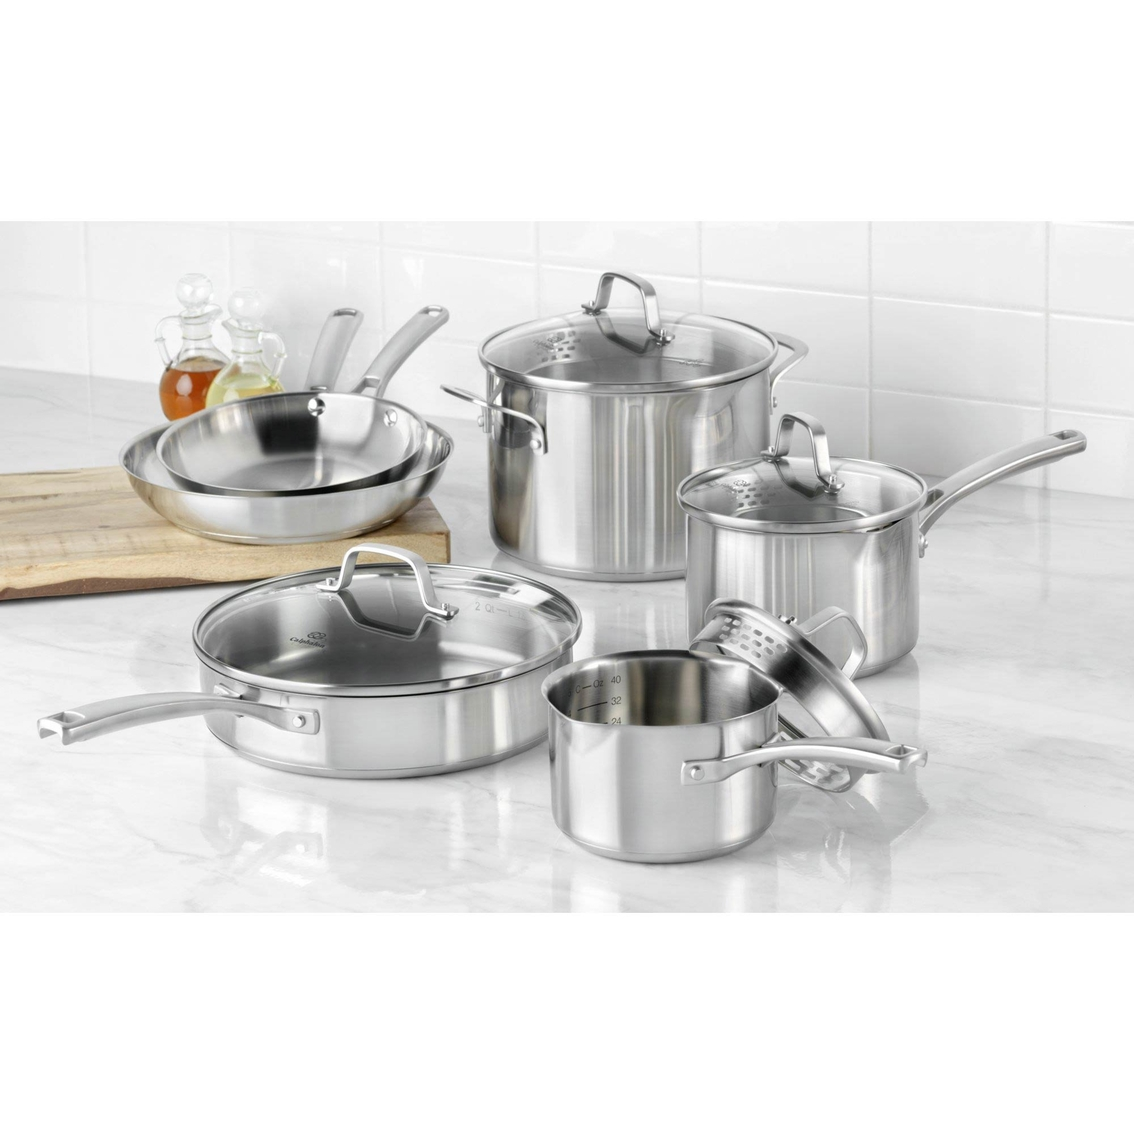 Calphalon classic ss 10 pc set stainless steel home for Kitchen set classic